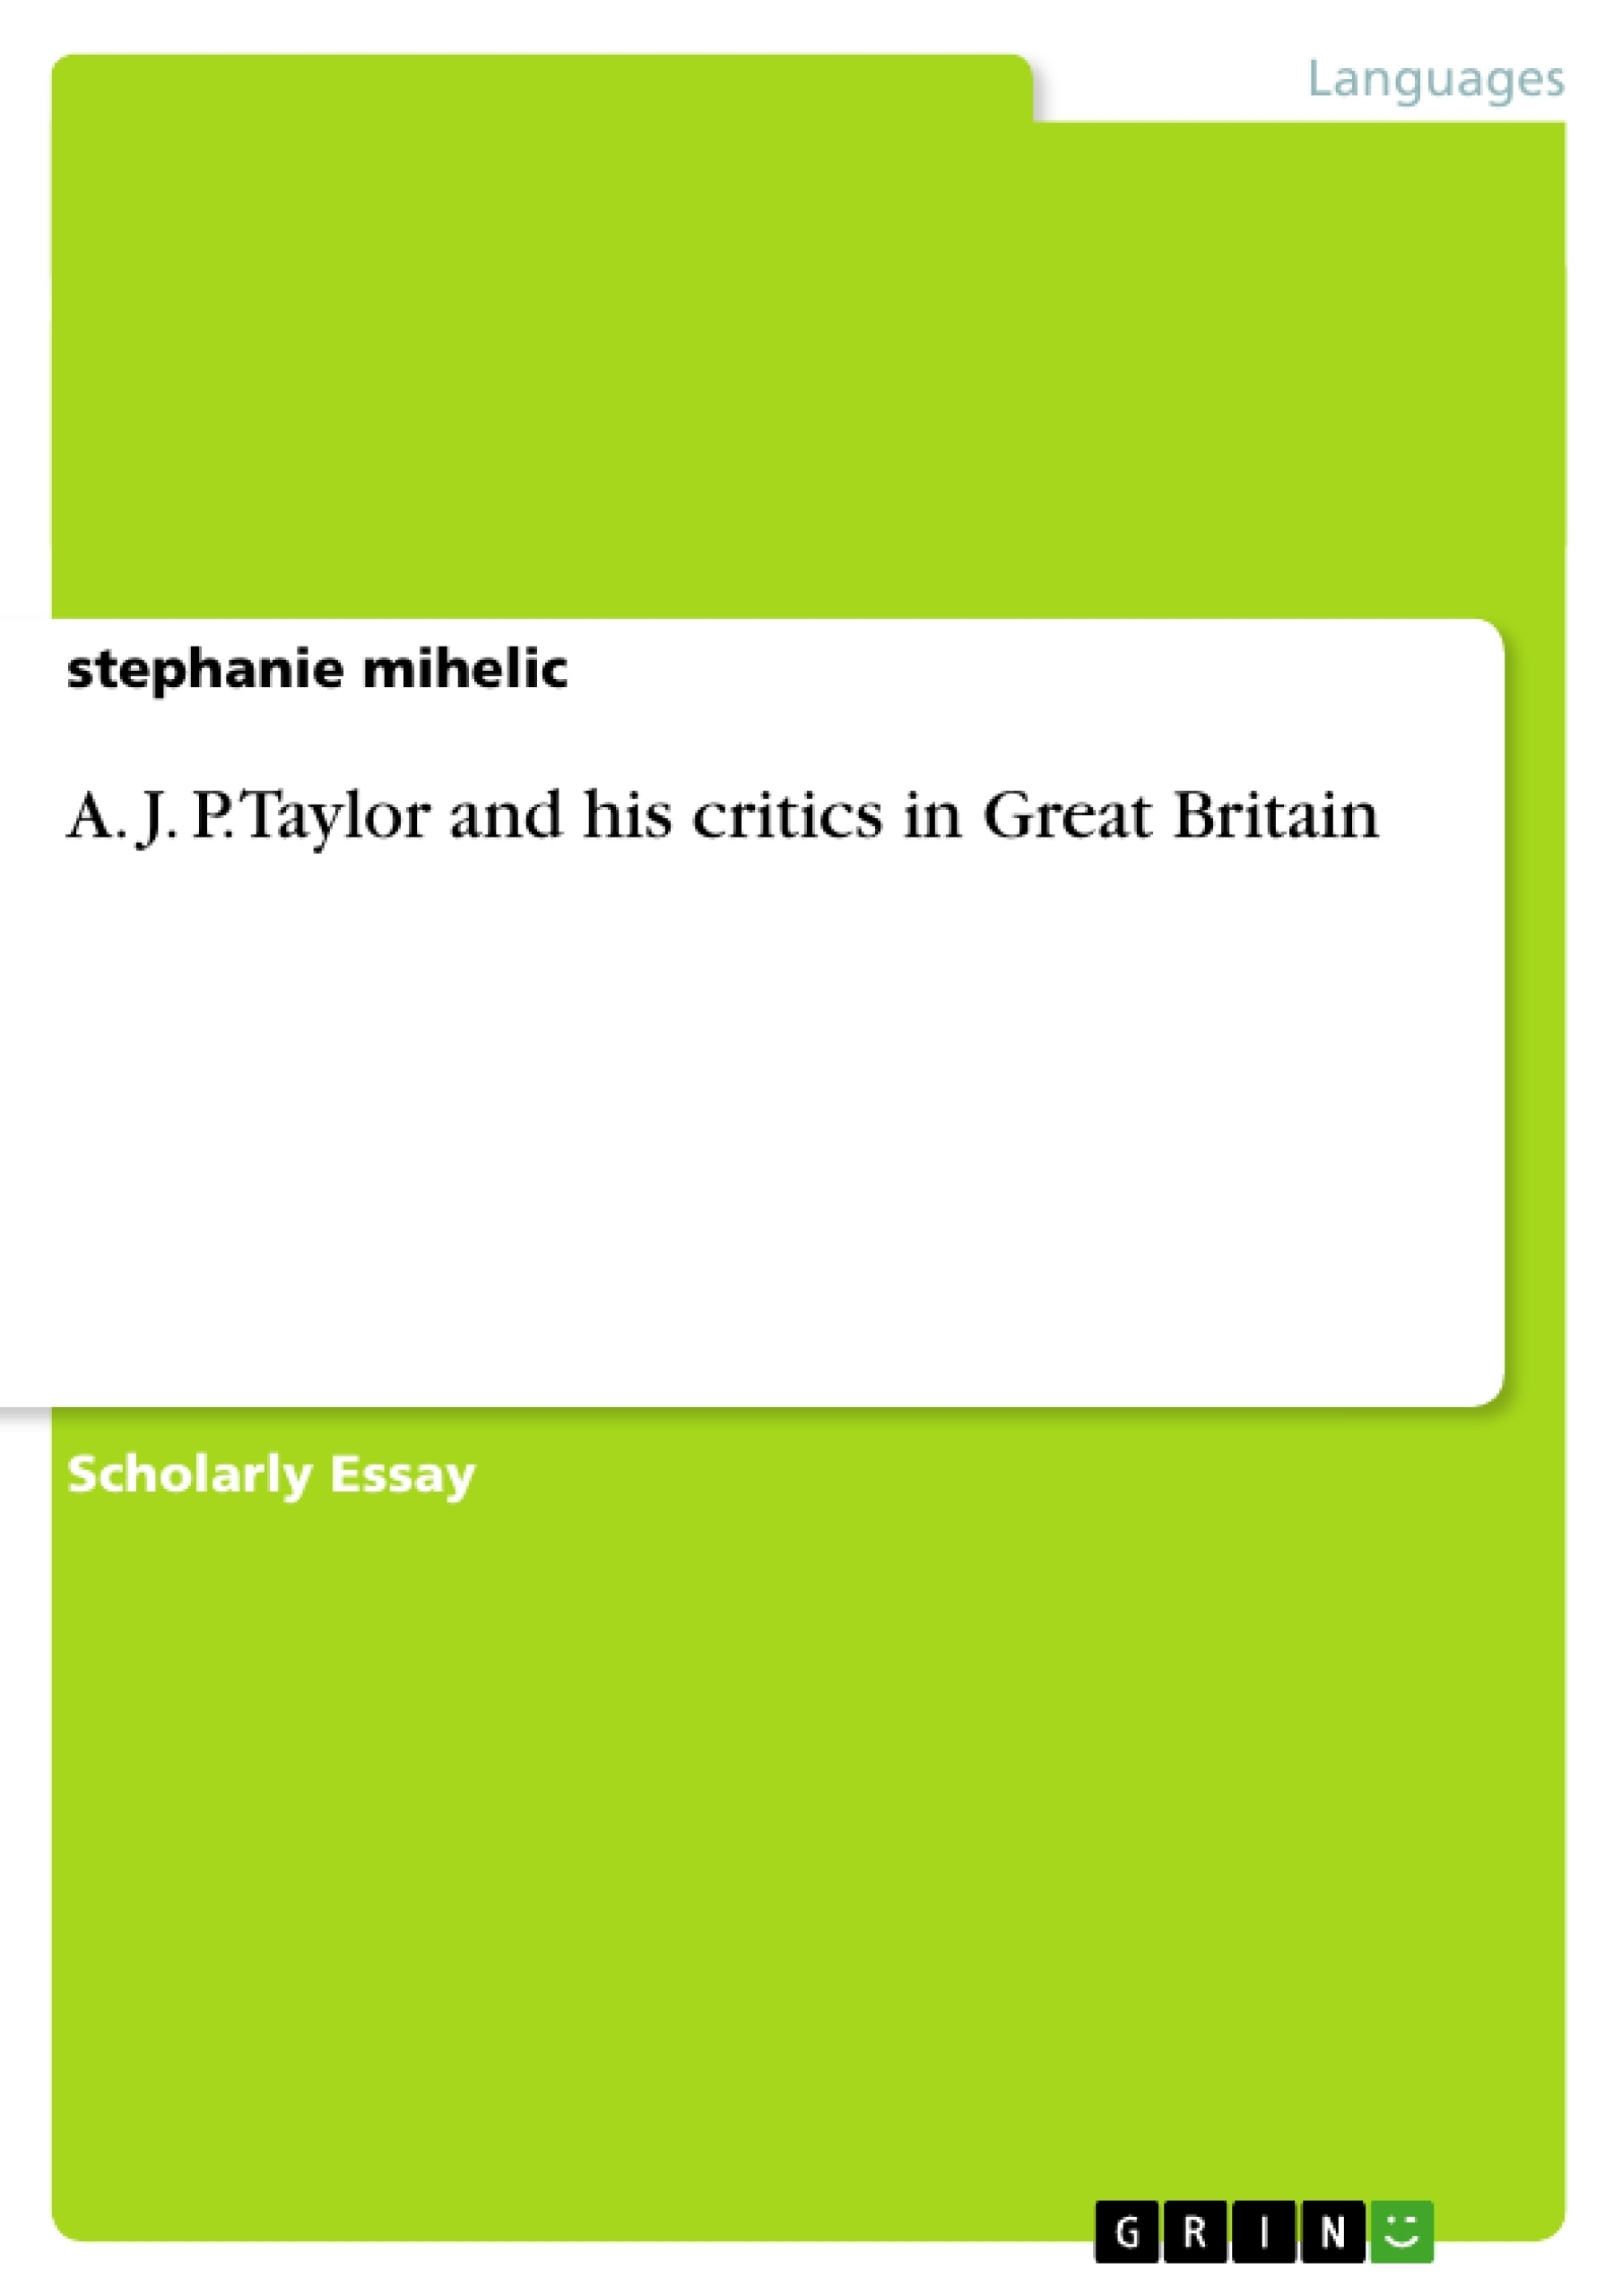 Title: A. J. P. Taylor and his critics in Great Britain